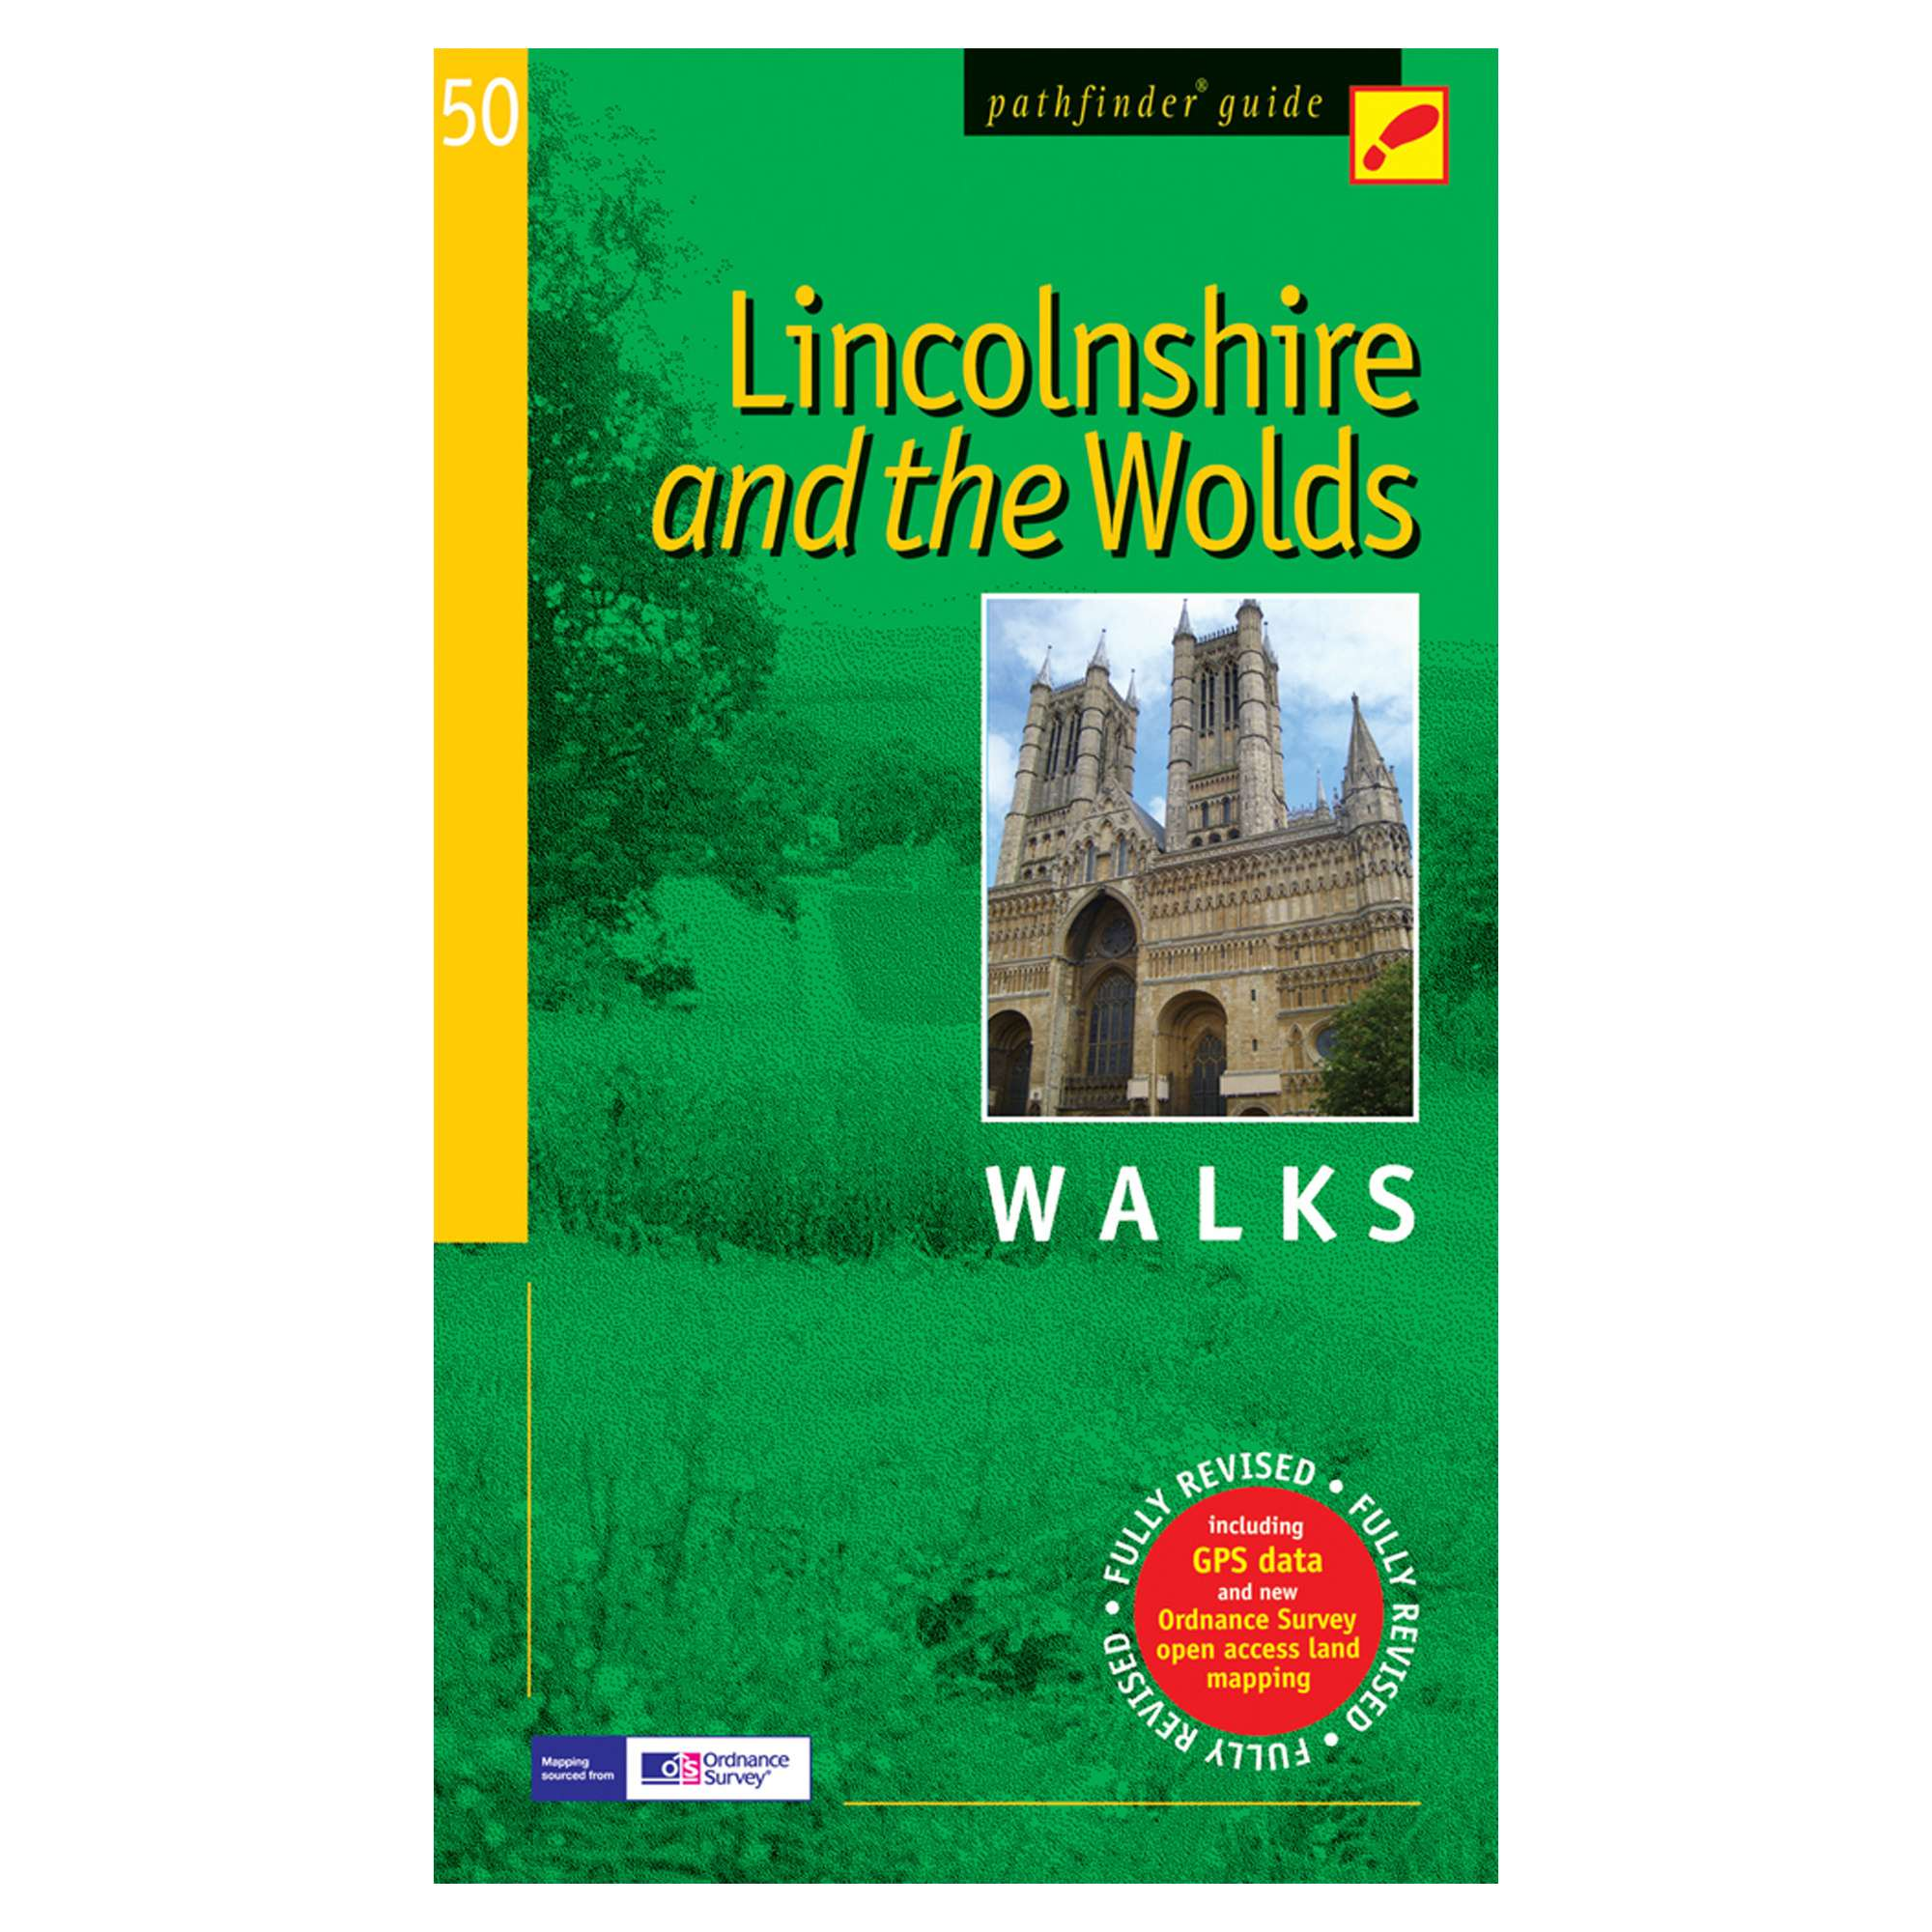 PATHFINDER Lincolnshire & the Wolds Walks Guide